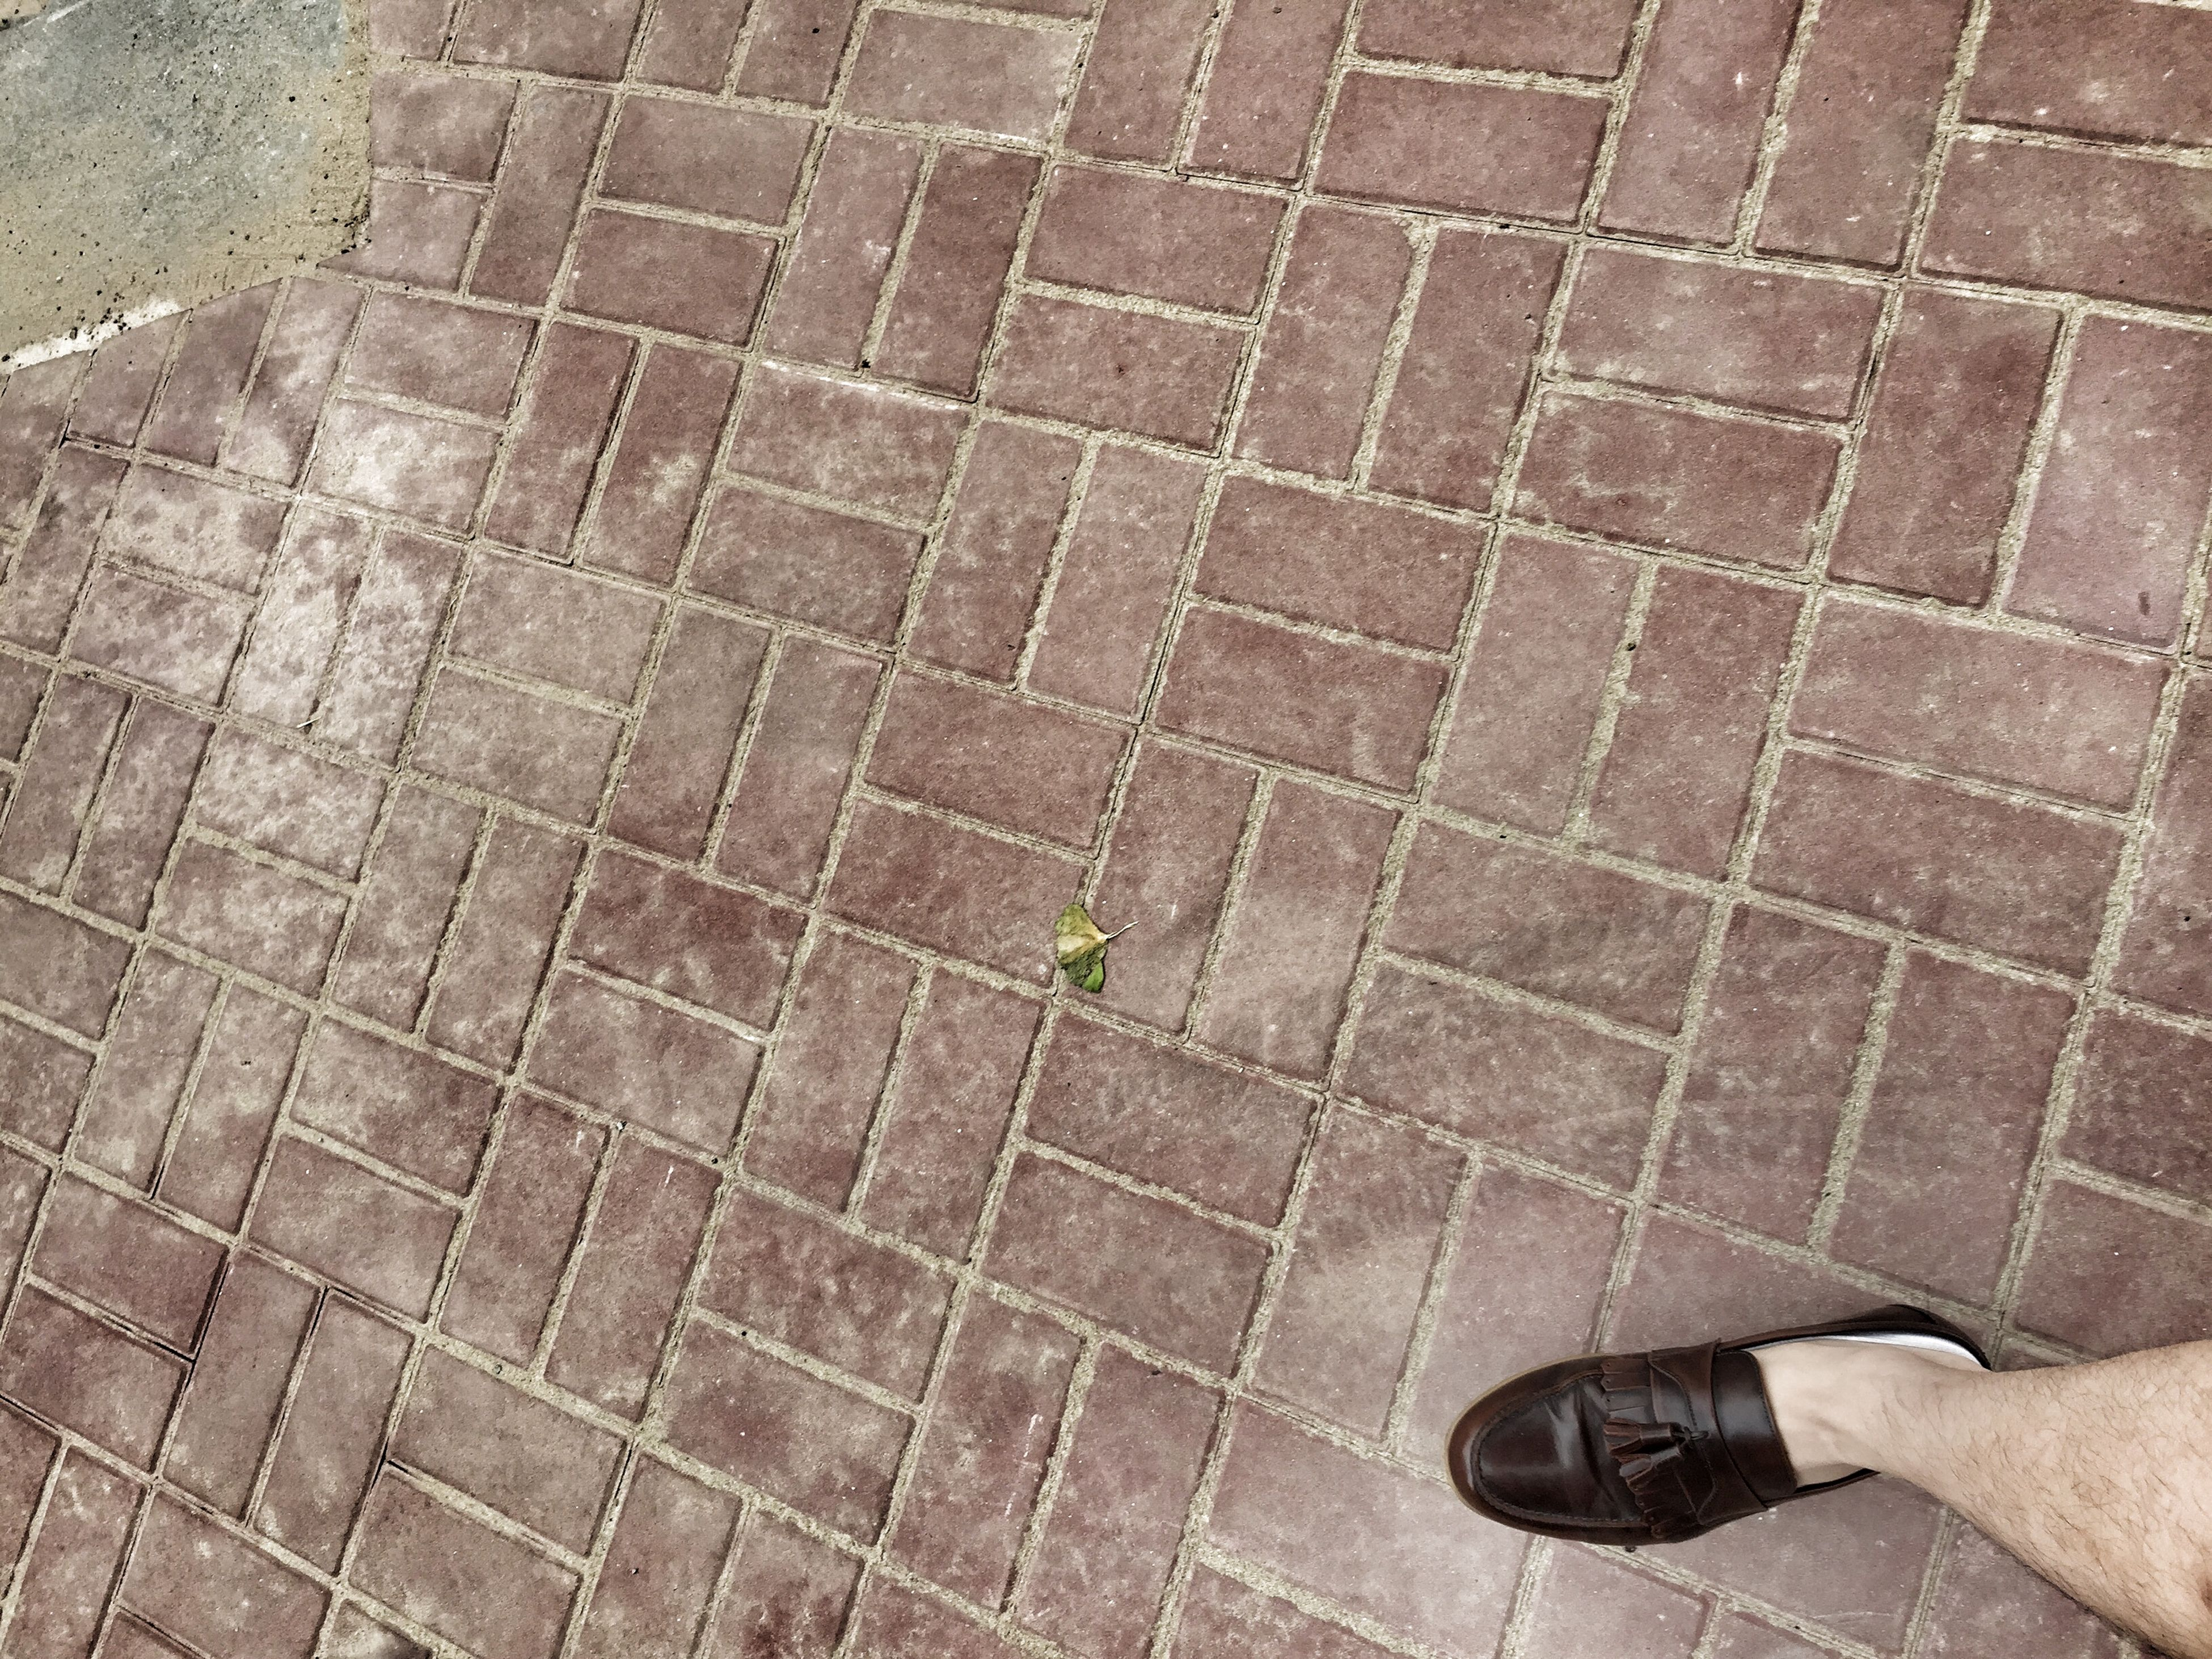 low section, person, high angle view, shoe, tiled floor, paving stone, cobblestone, footpath, footwear, street, flooring, sidewalk, pattern, human foot, personal perspective, standing, tile